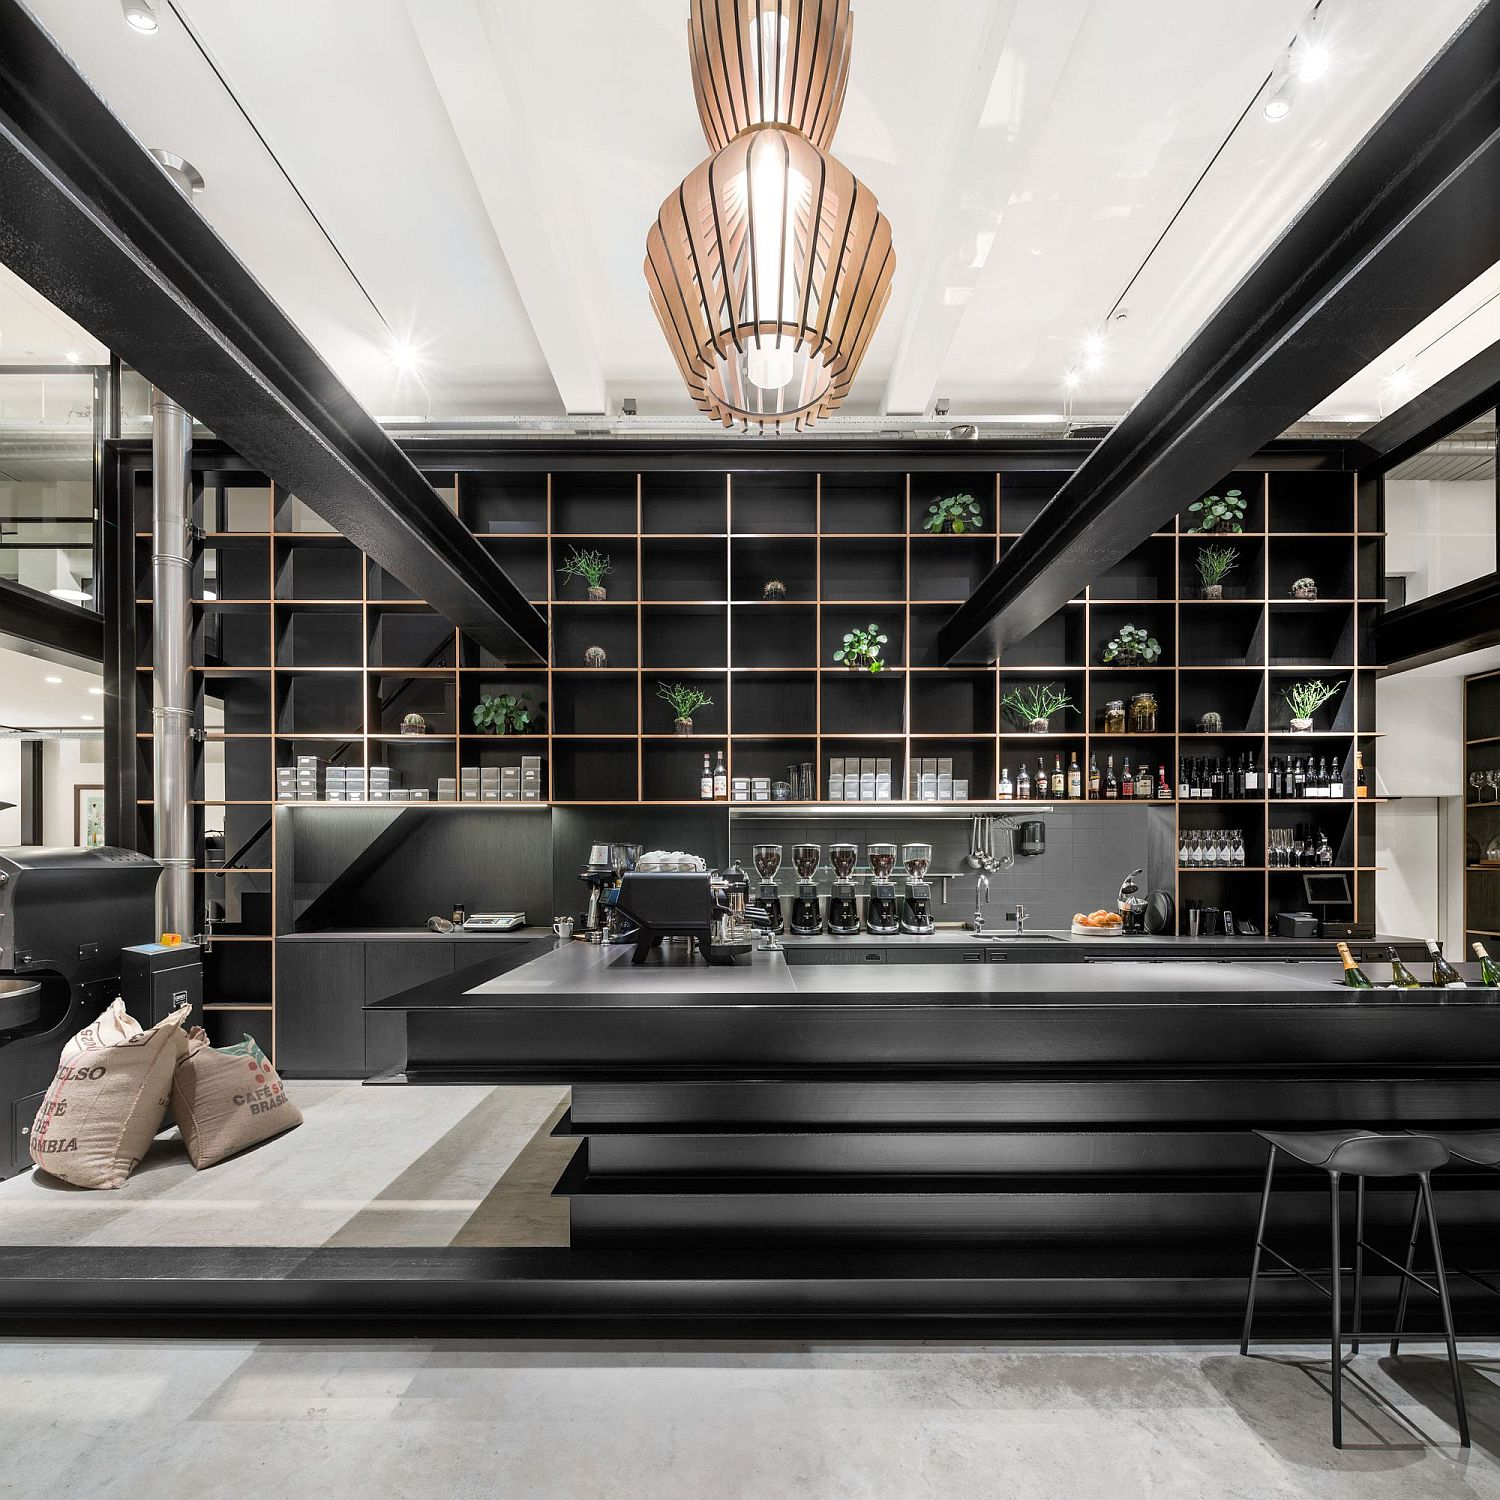 Fabulous-pendant-lights-bring-both-visual-and-textural-contrast